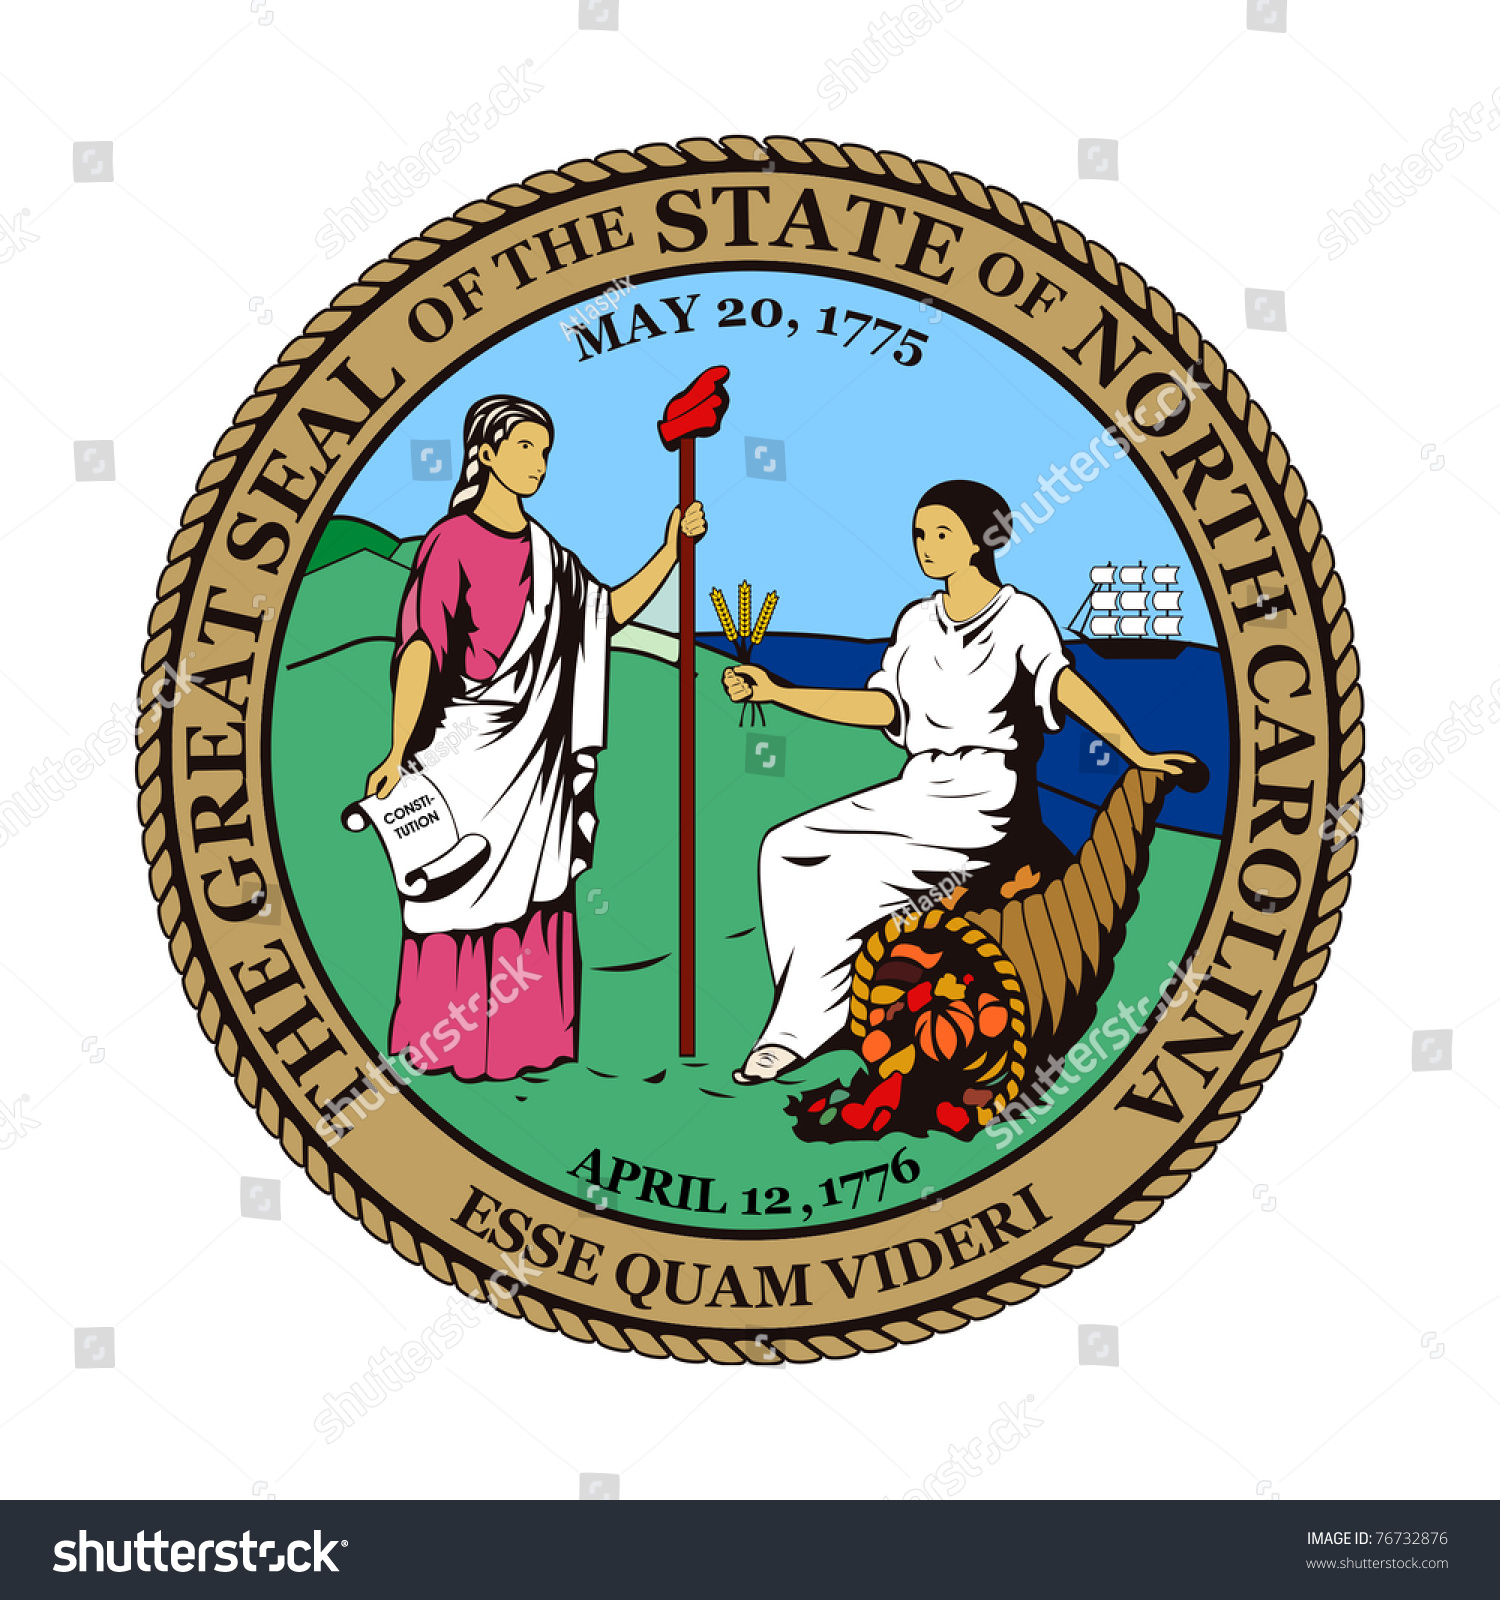 Seal american state north carolina isolated stock illustration seal of american state of north carolina isolated on white background buycottarizona